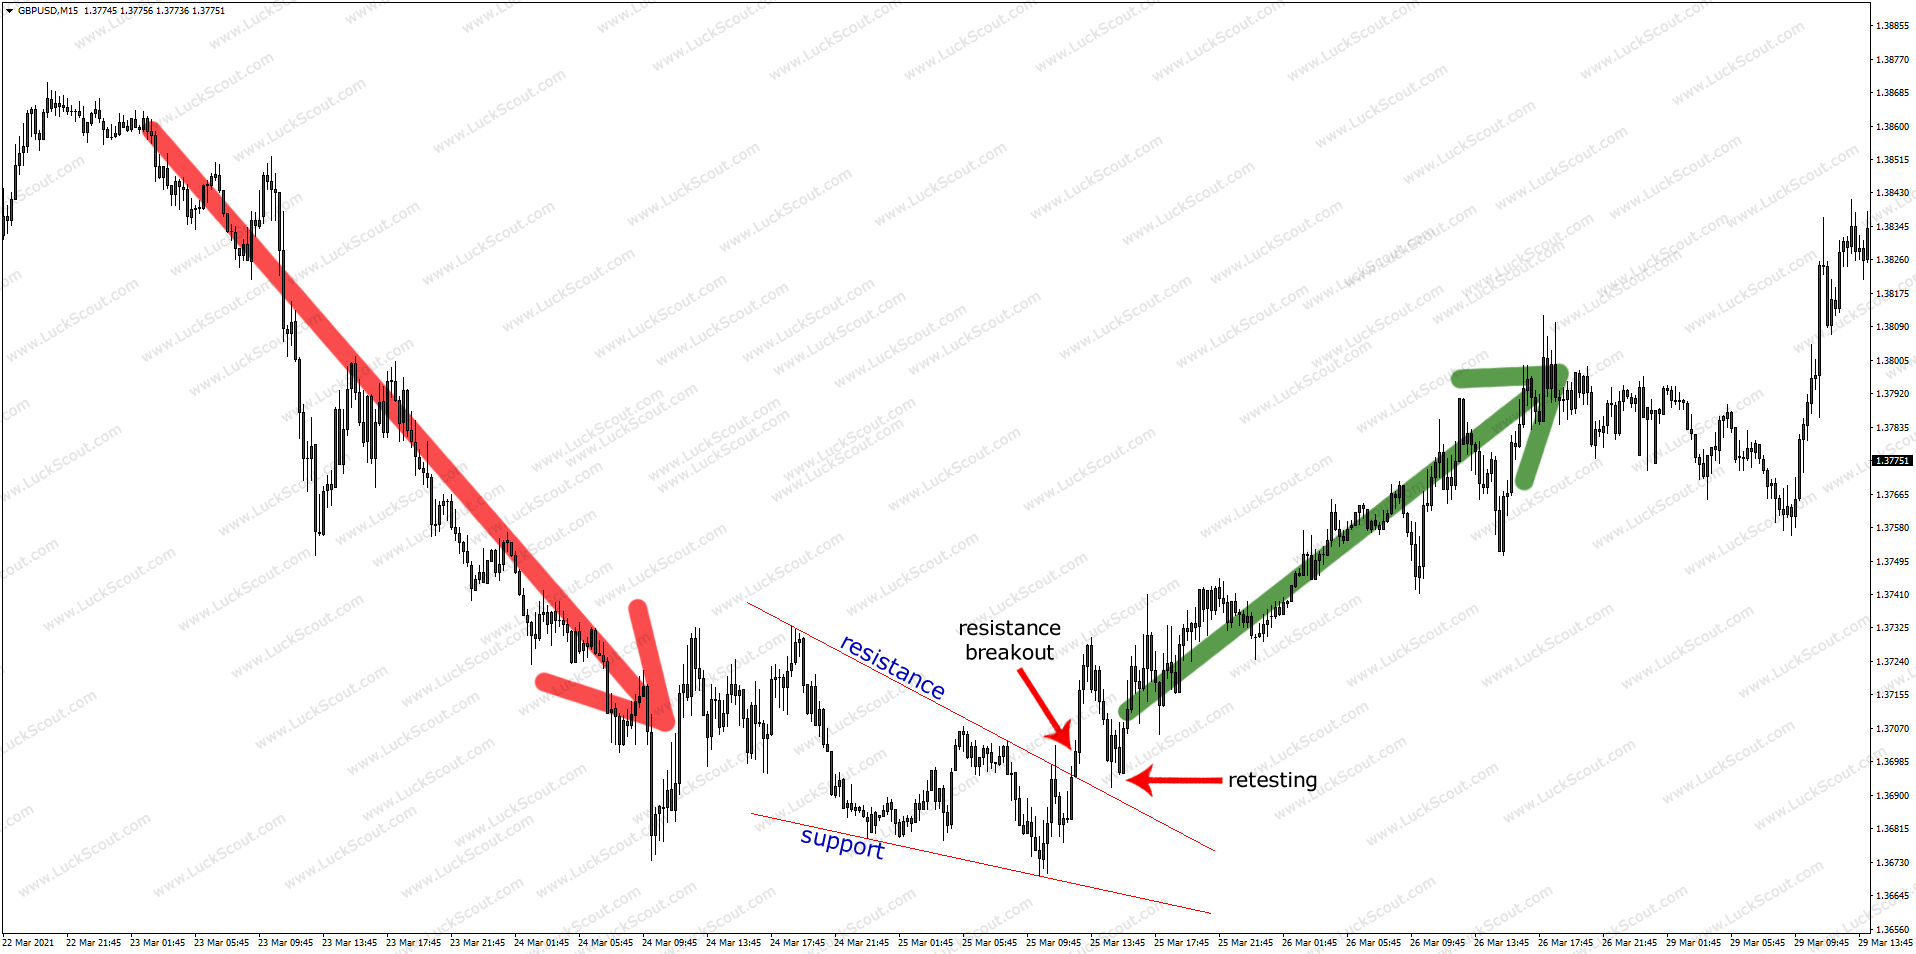 Pennant and Wedge as Reversal Patterns